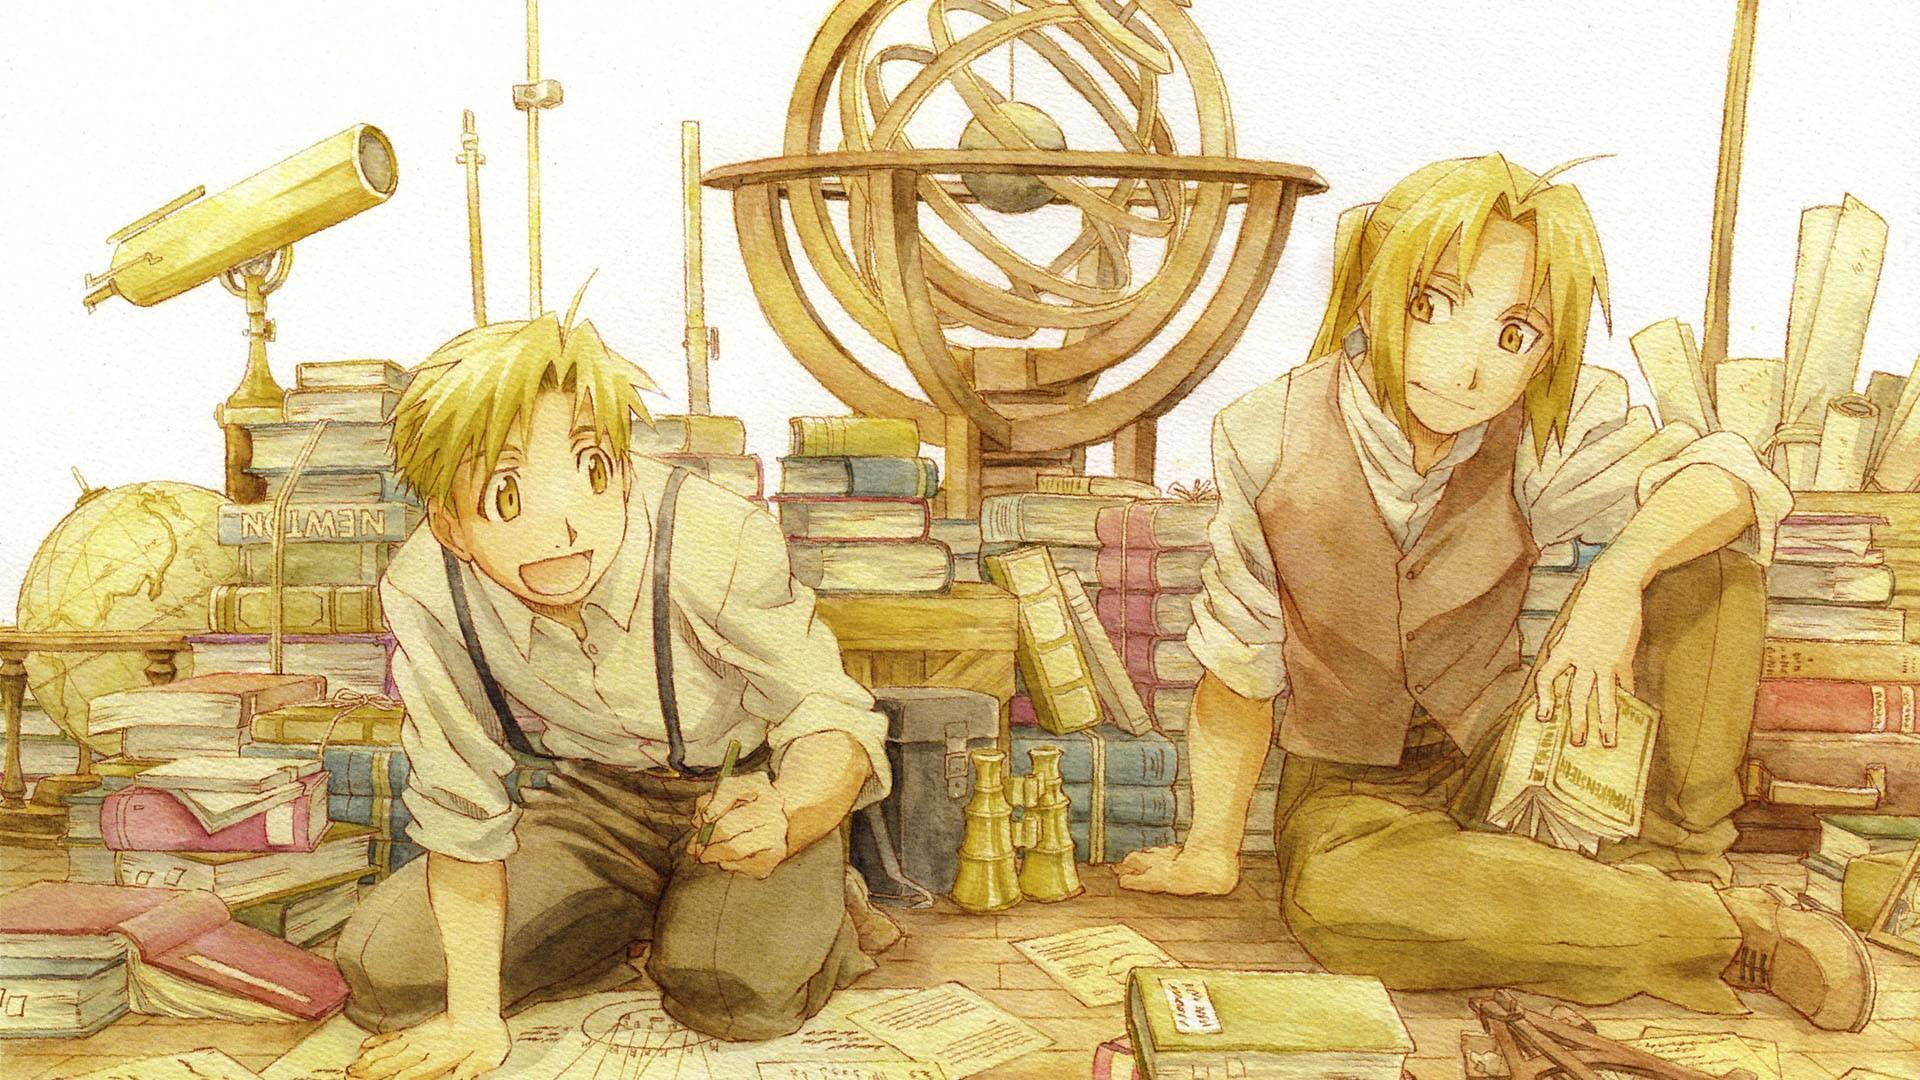 Download full hd 1080p FullMetal Alchemist (FMA) PC wallpaper ID:310774 for free